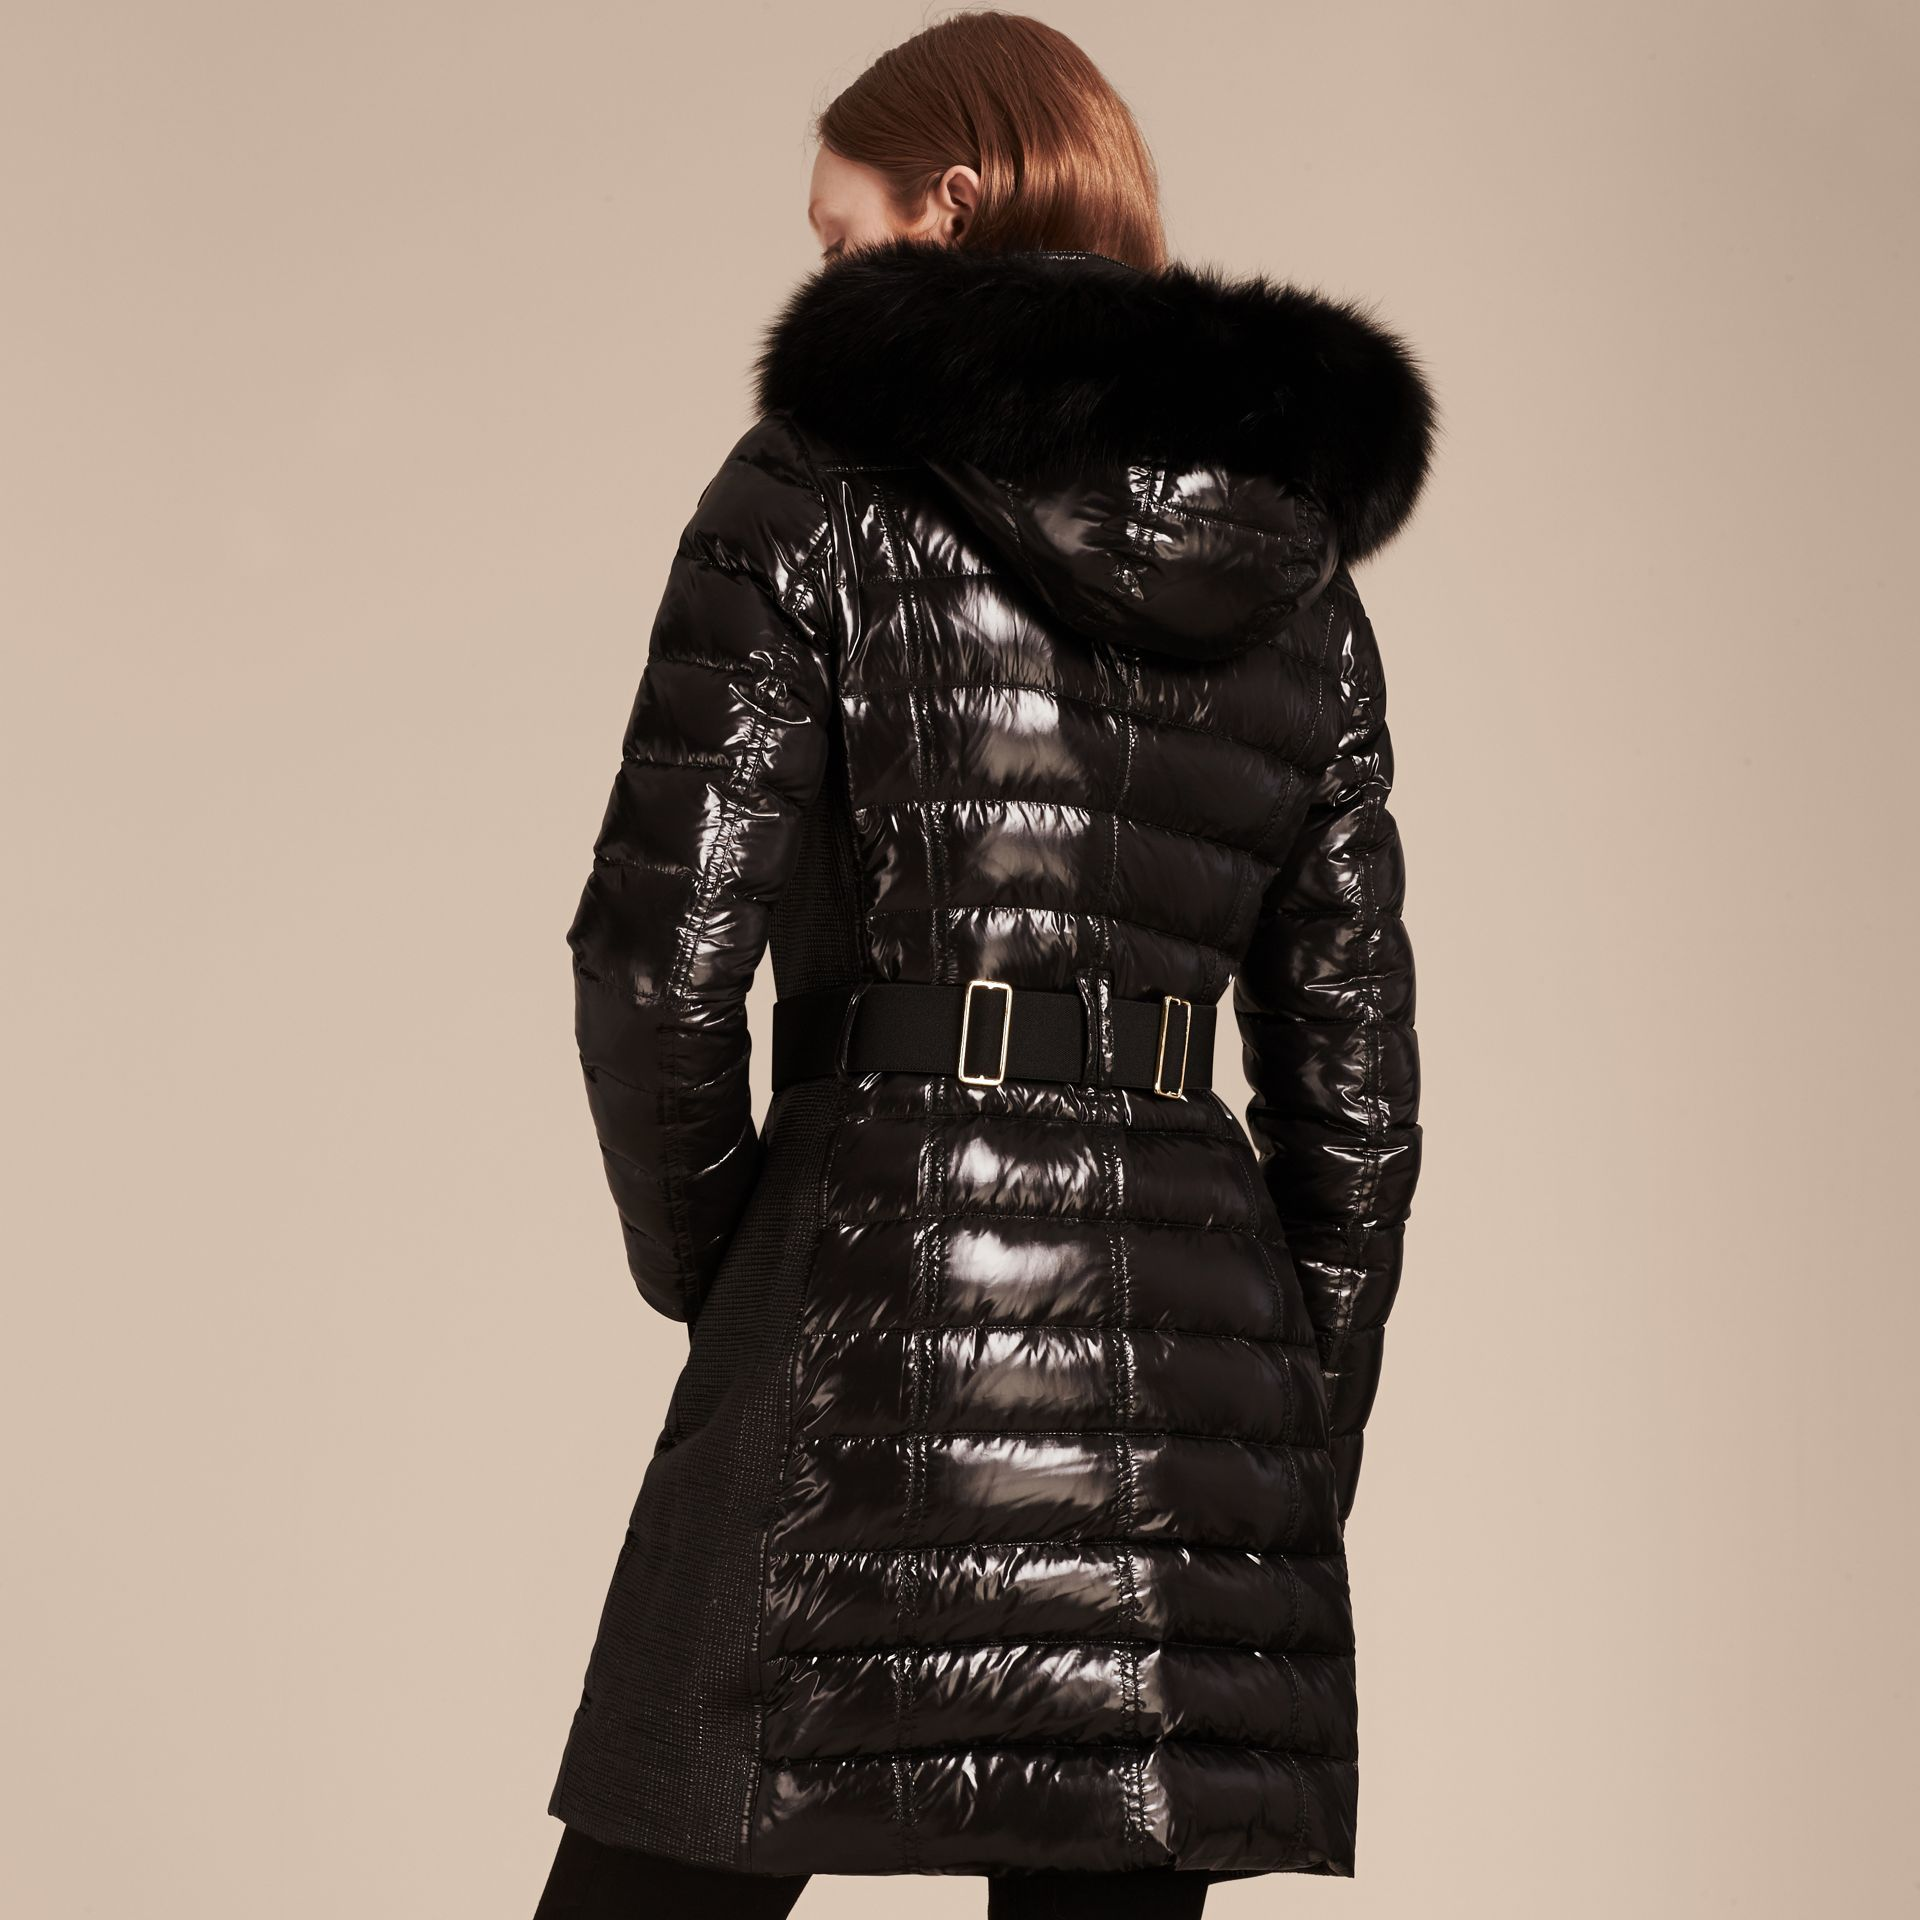 Black Down-Filled Coat with Detachable Fur-trimmed Hood Black - gallery image 4